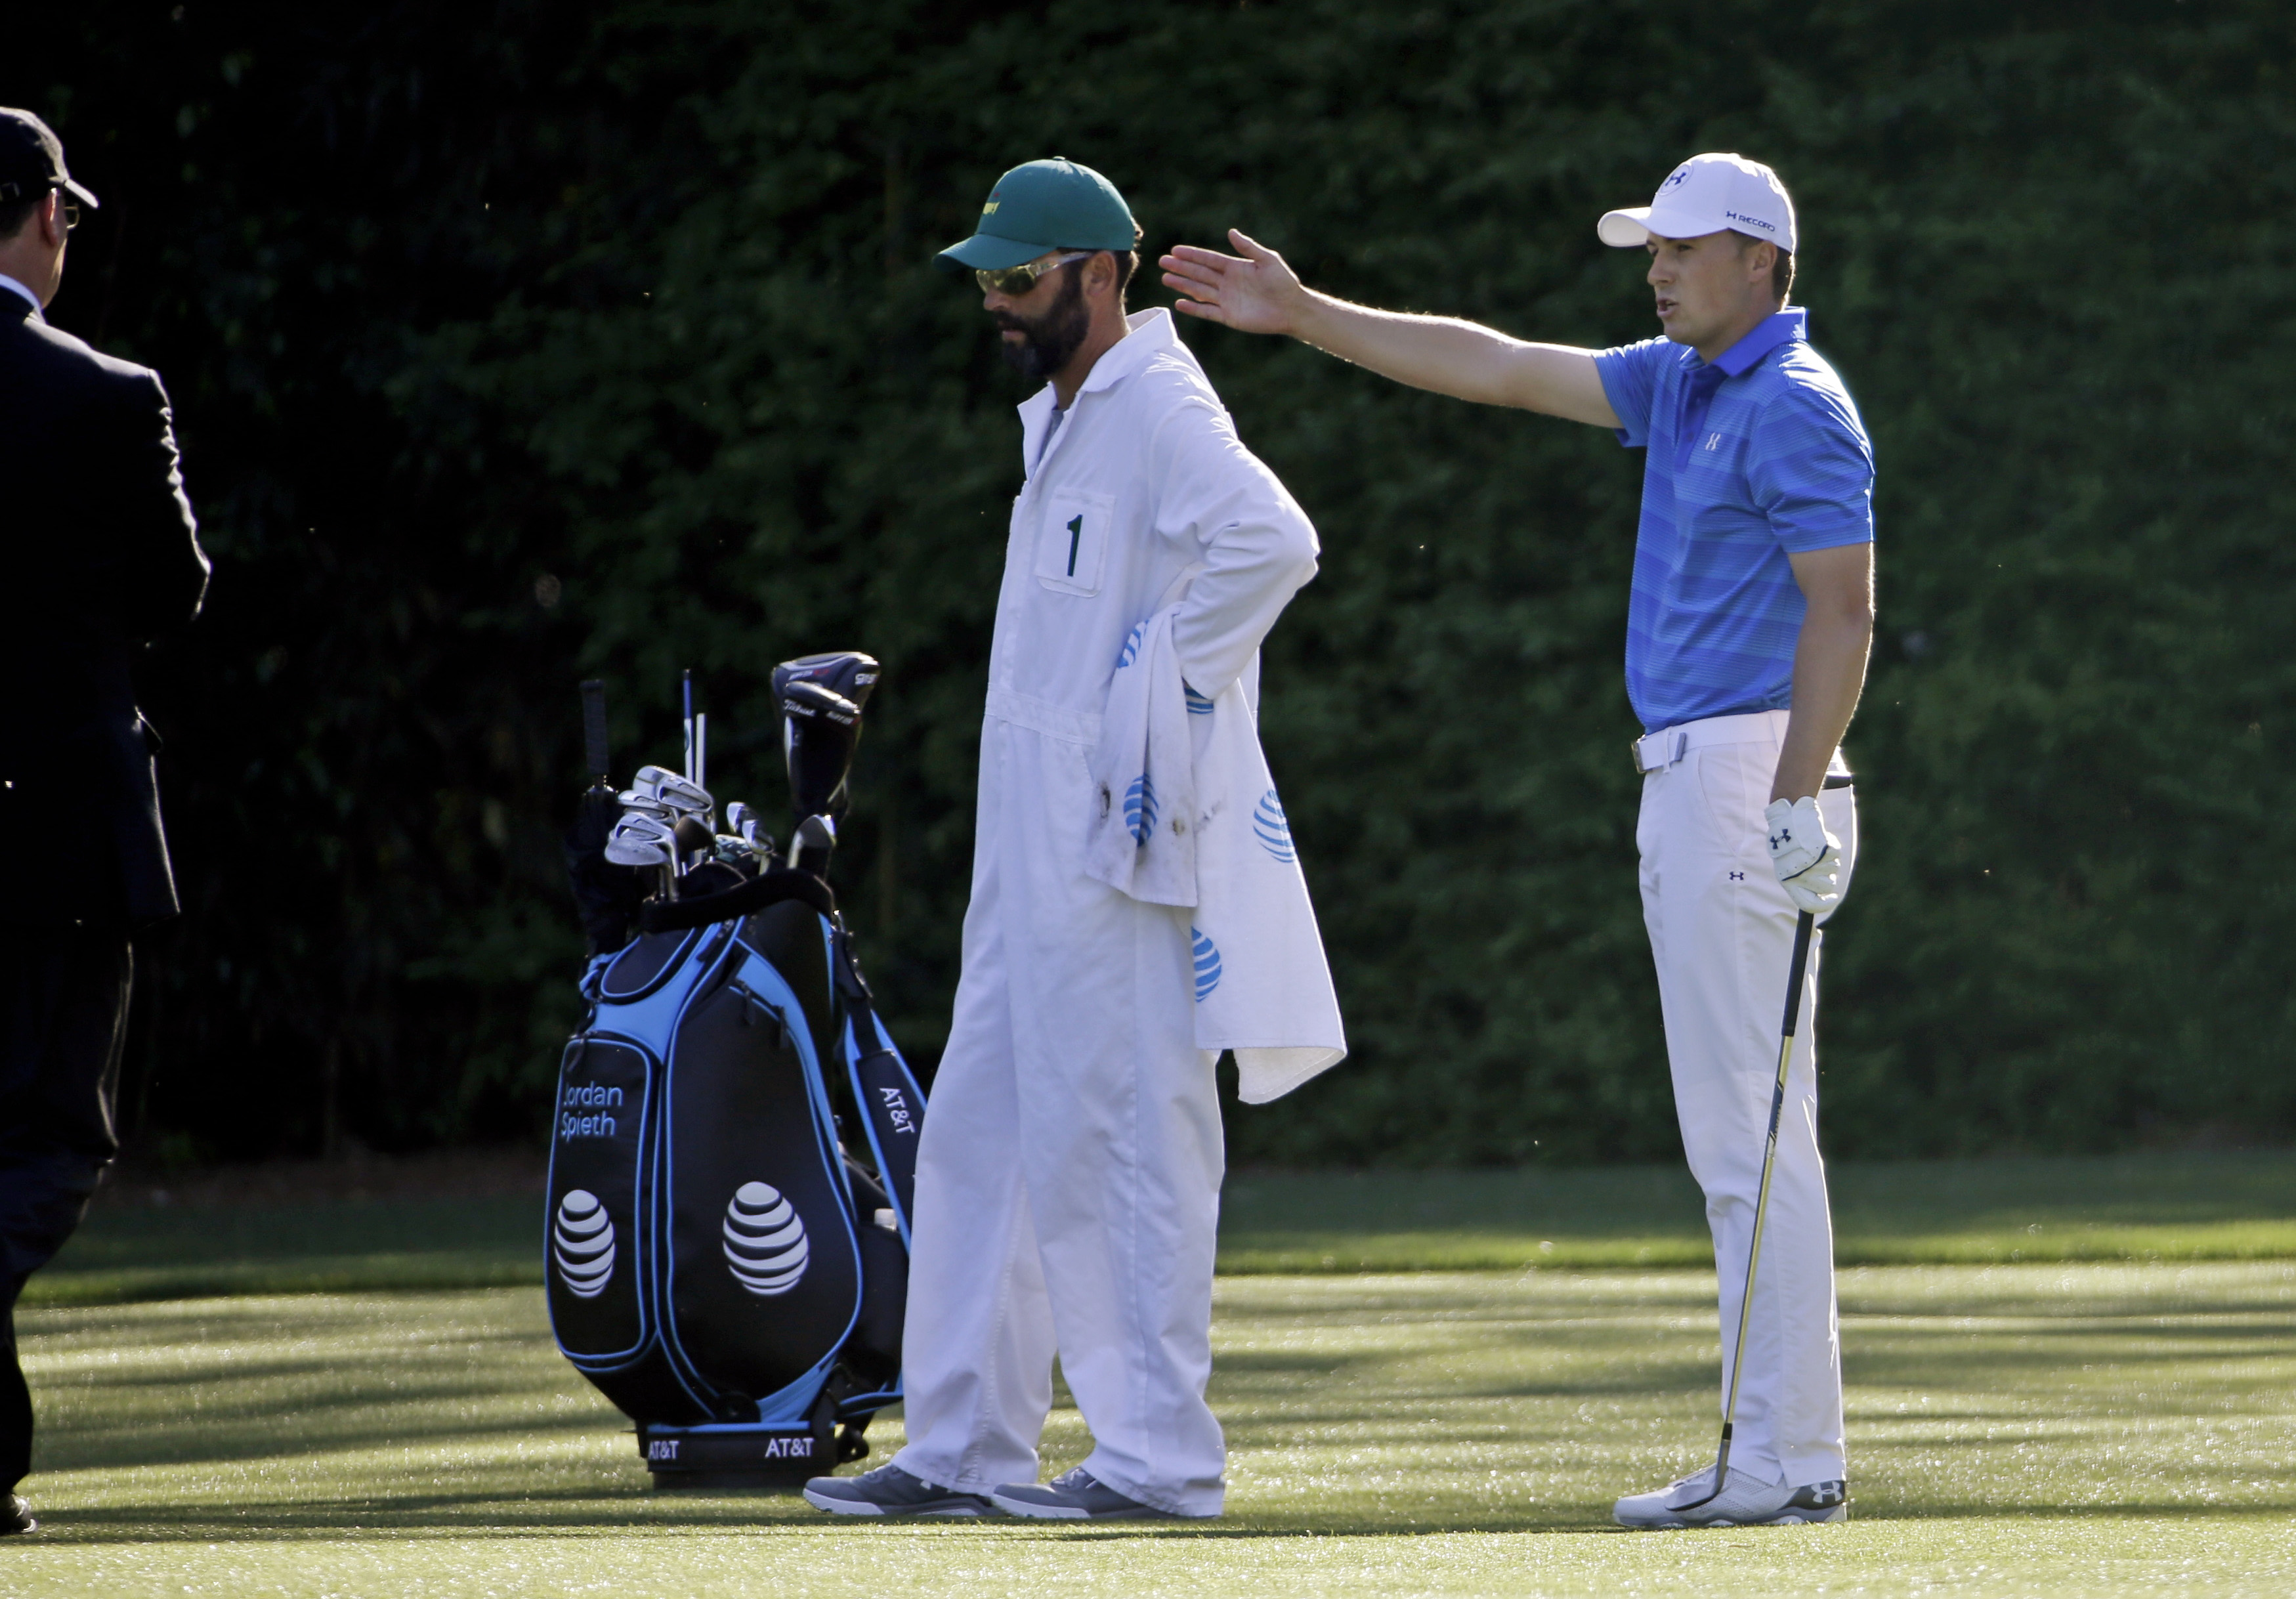 Jordan Spieth discuss his shot after his second drop on the 12th fairway during the final round of the Masters on April 10, 2016.